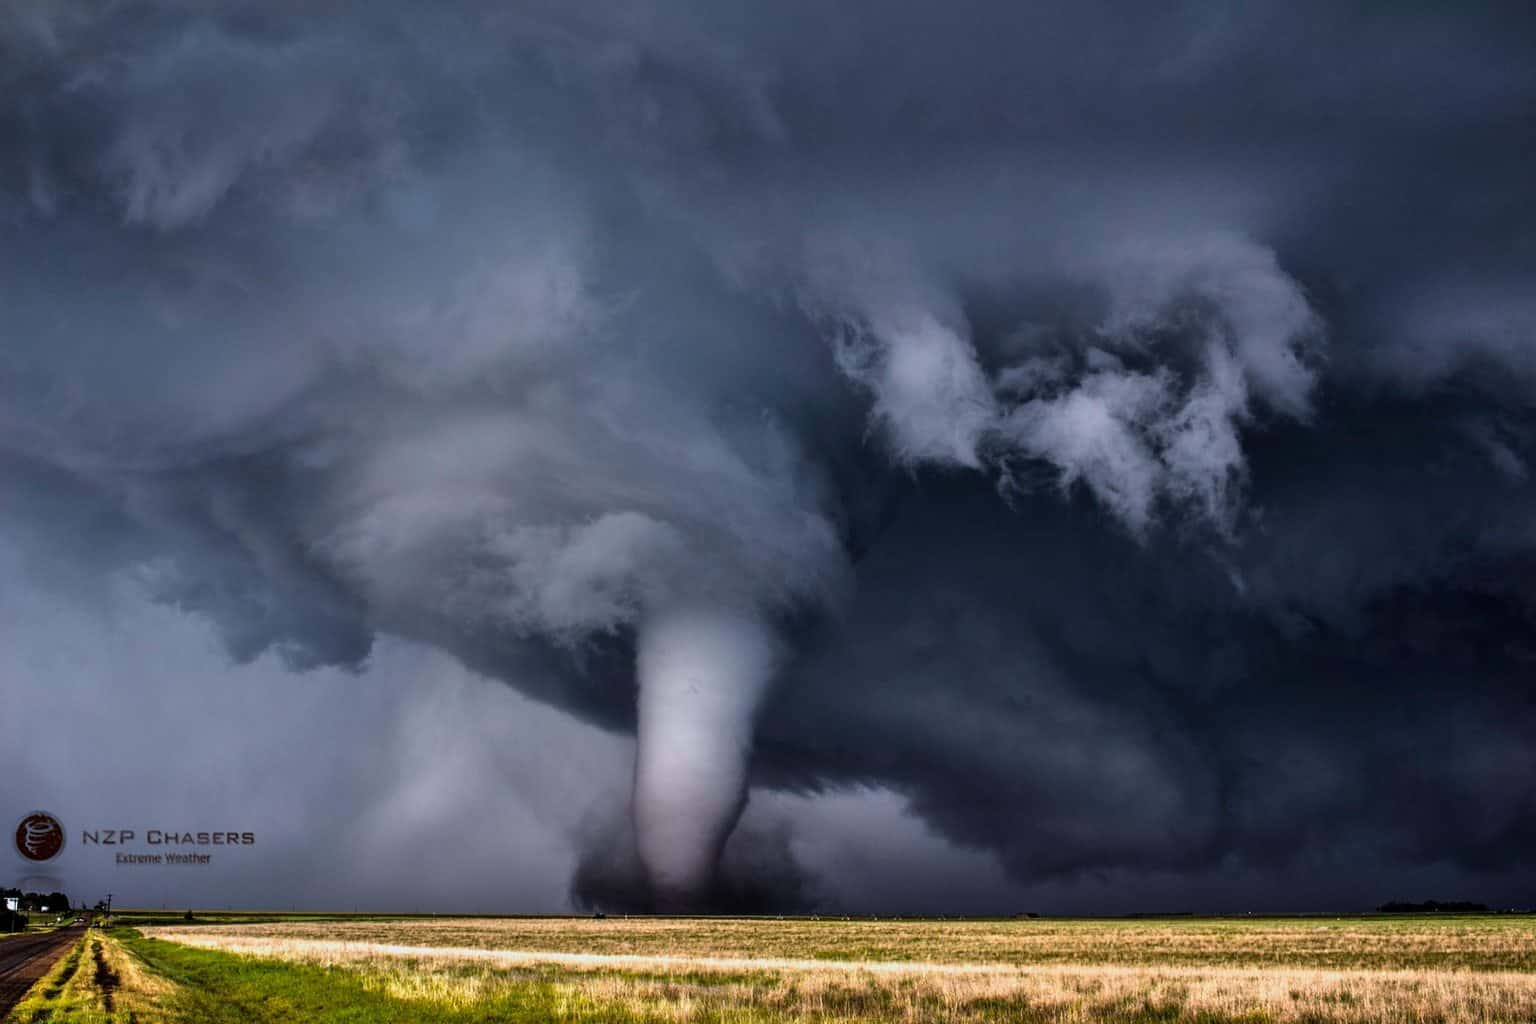 Pic from tornado on Tuesday near Dodge City, KS. Incredibly photogenic.